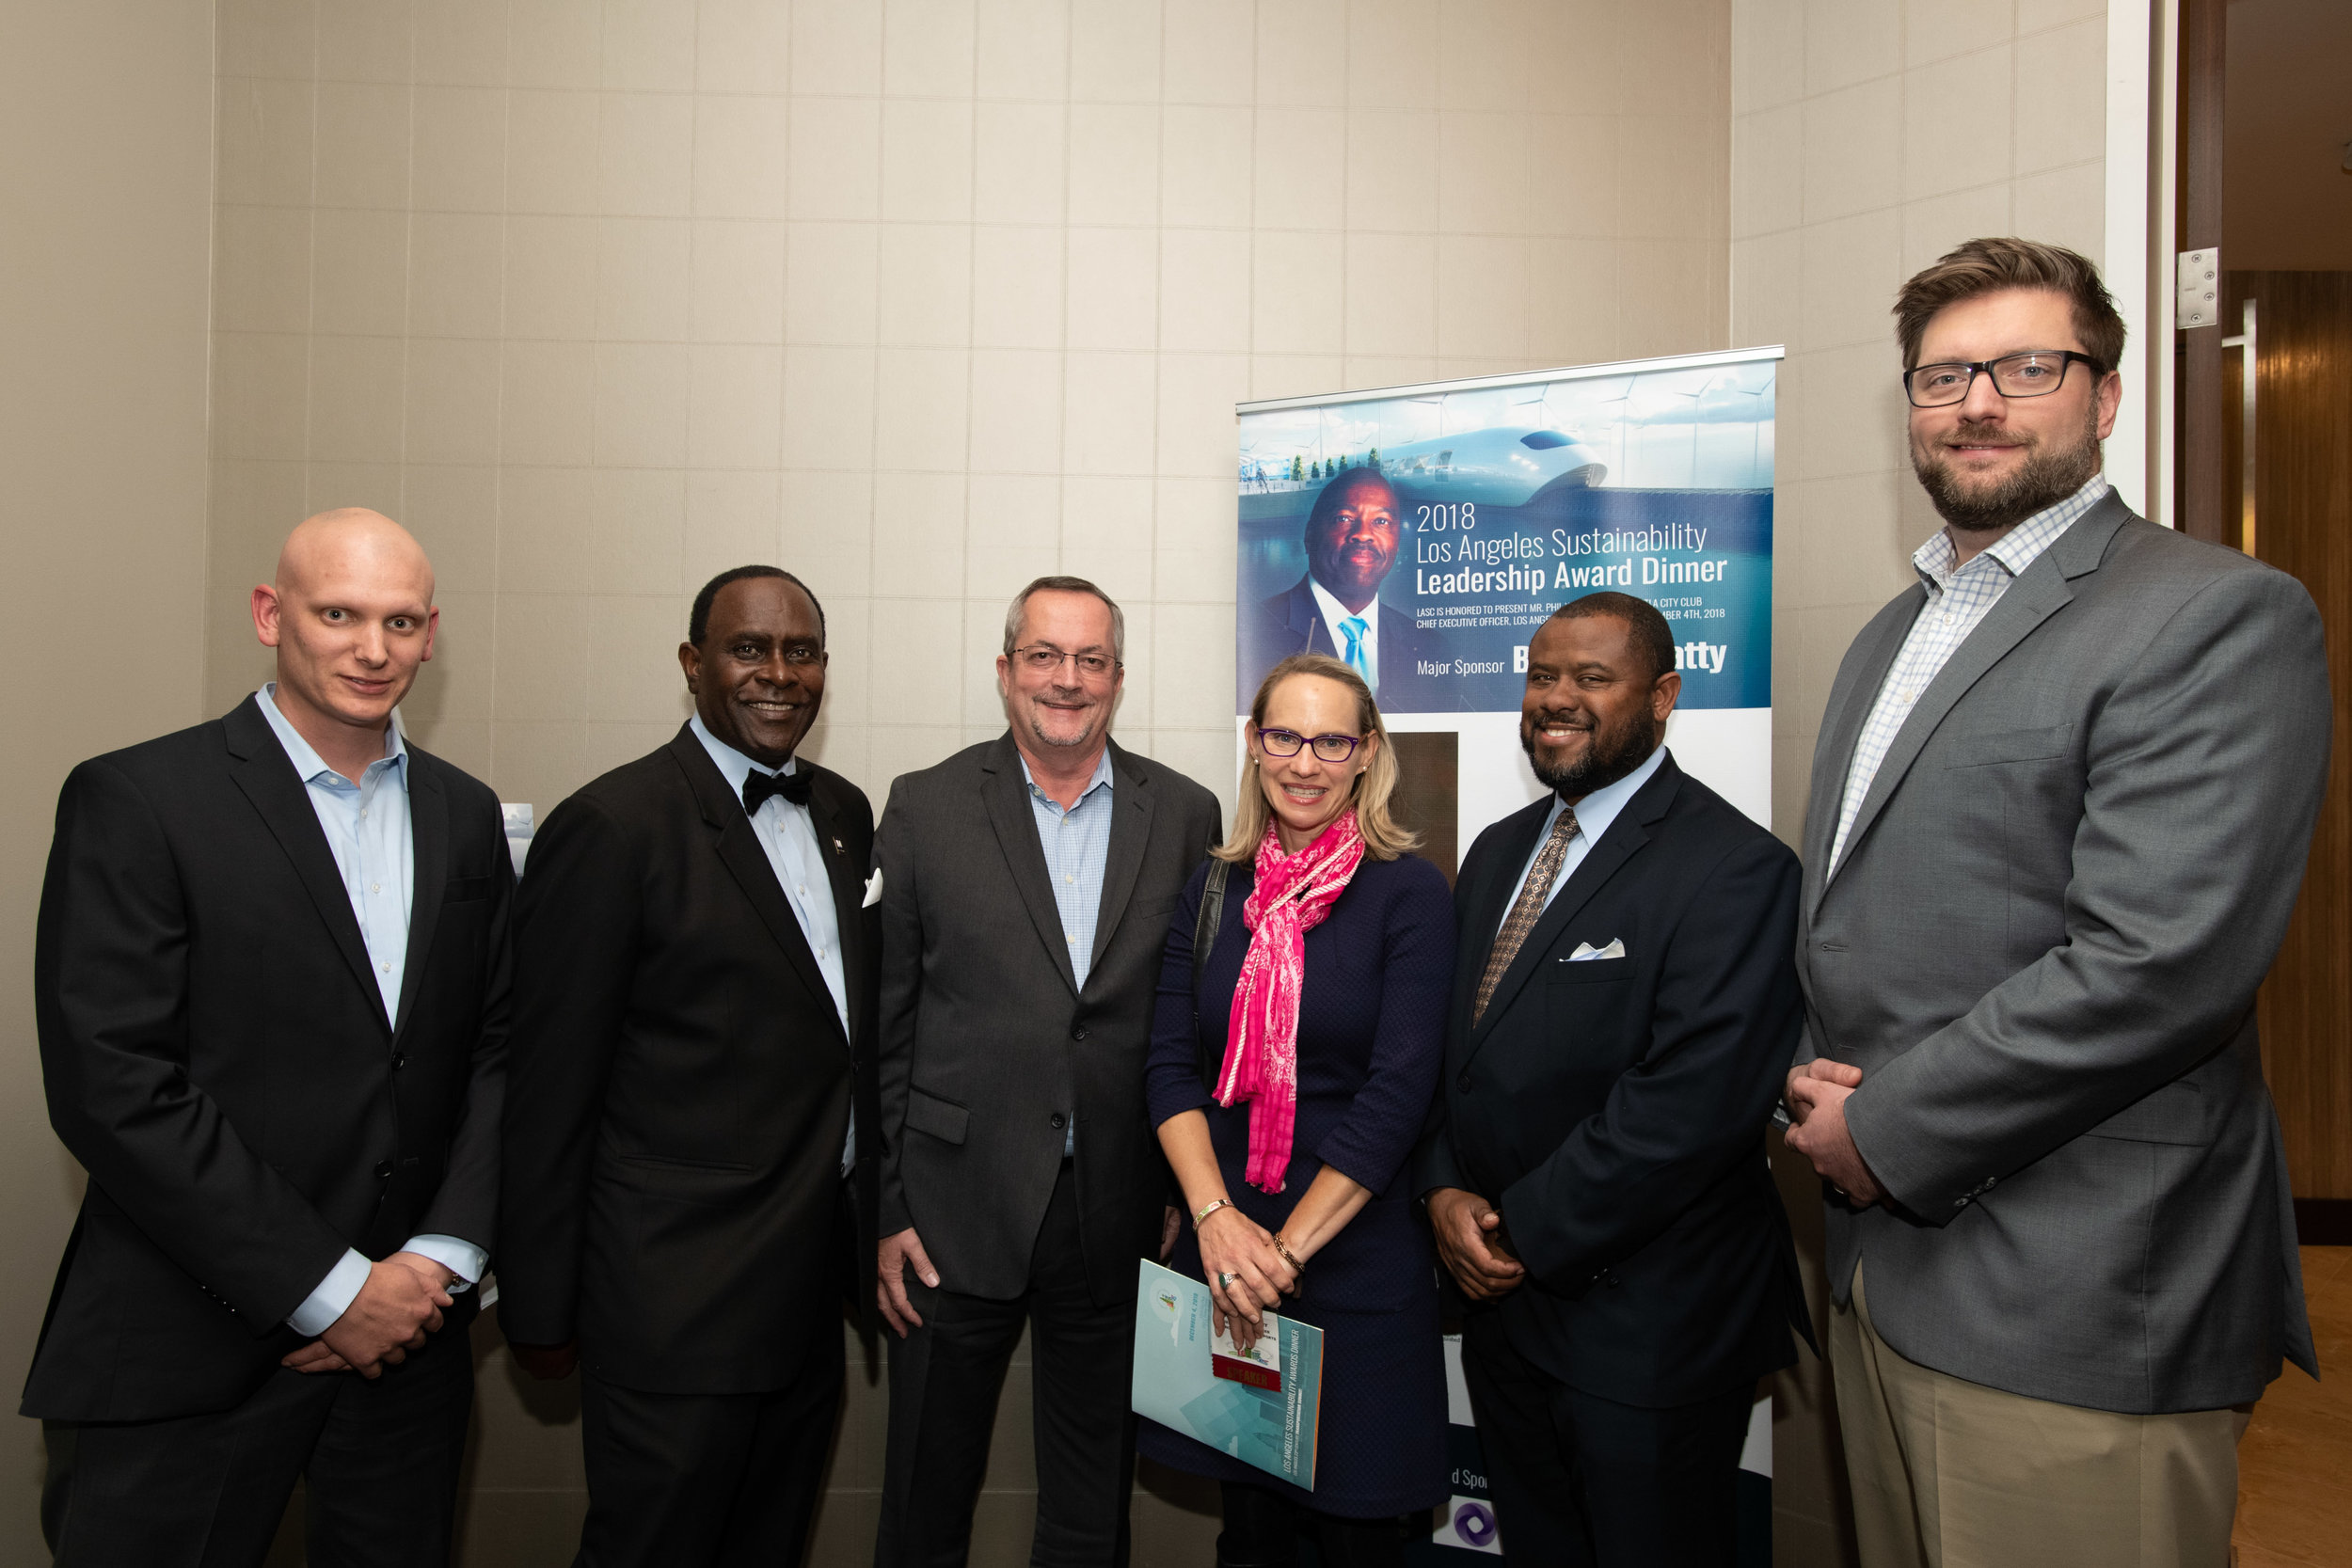 Pic 7 L-R  Kelly Phariss, Dr. Sherman Gay, Joe Reed, Tamara McCrossen-Orr, Shannon Lawrence and Mark Jennings